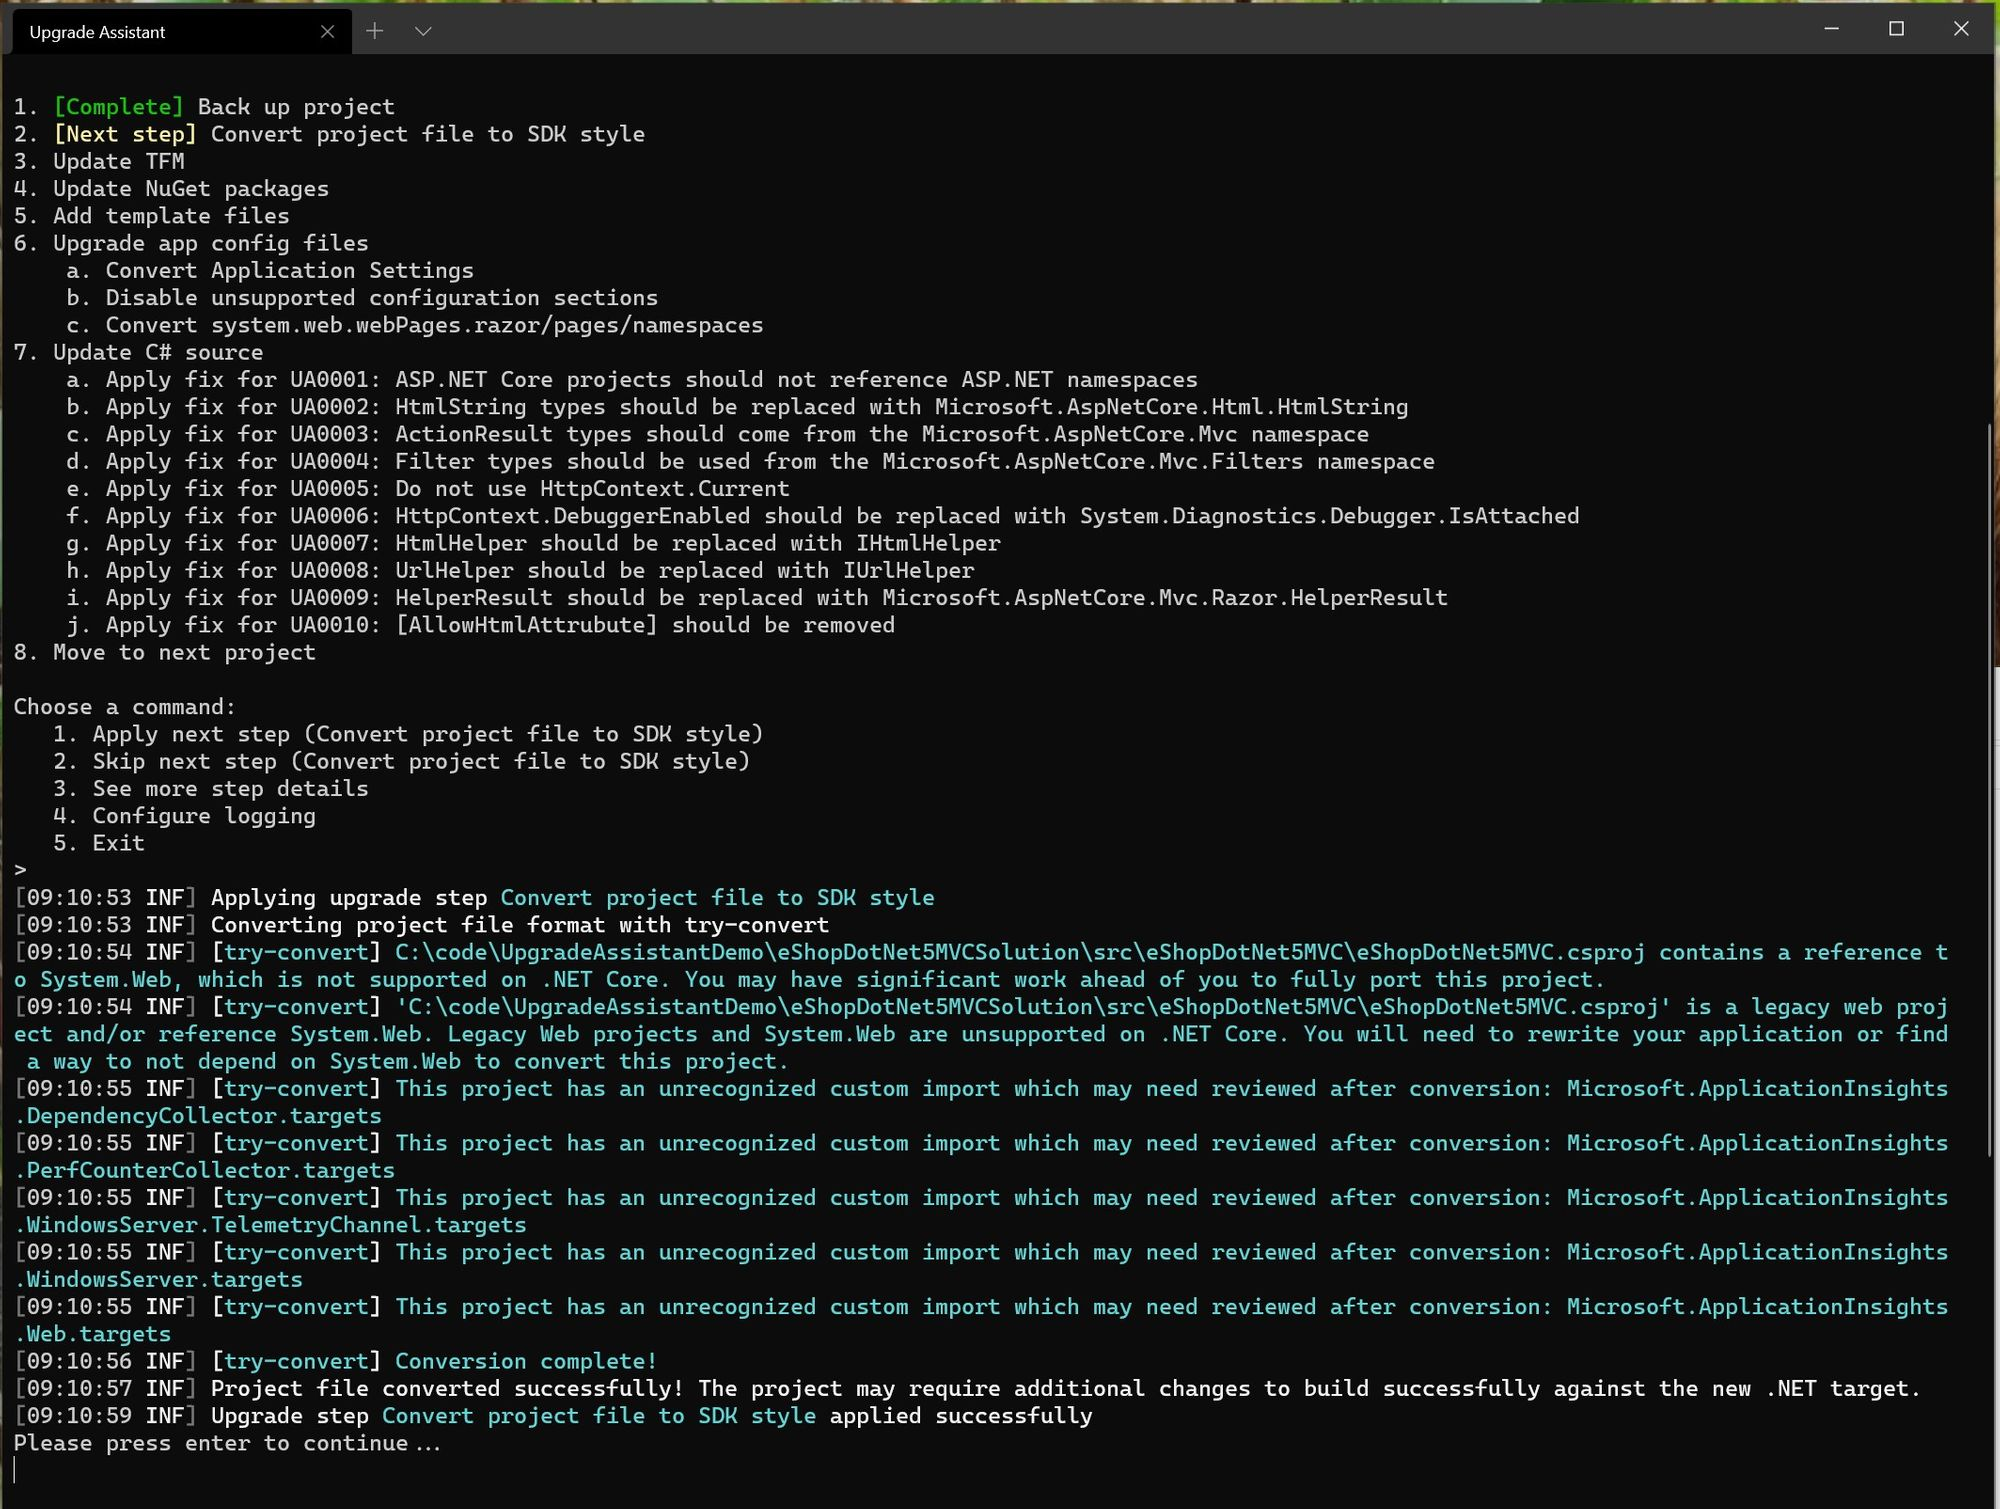 The .NET Upgrade Assistant converts the project file to the SDK style